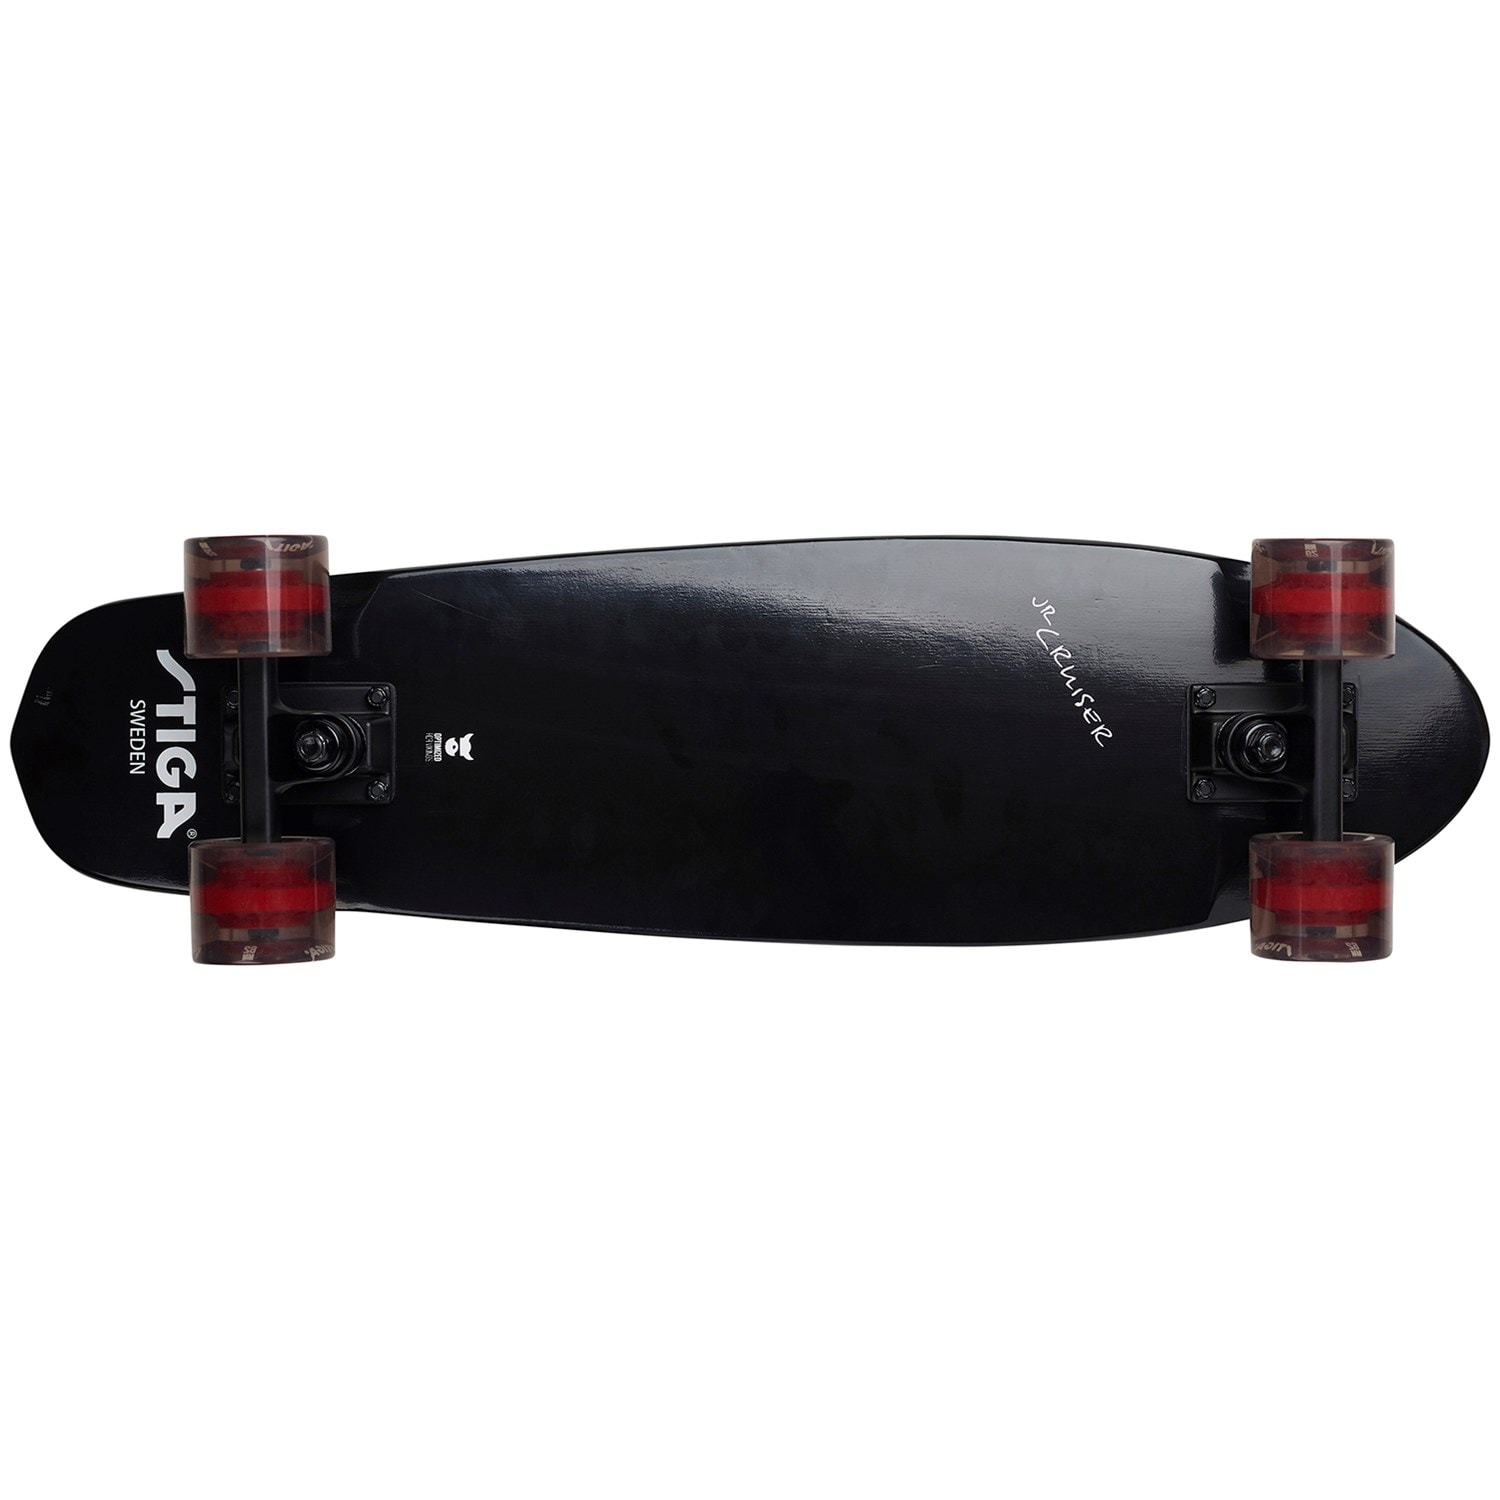 "Stiga - Skateboard JR Cruiser 26"" - Black (80-0727-01)"